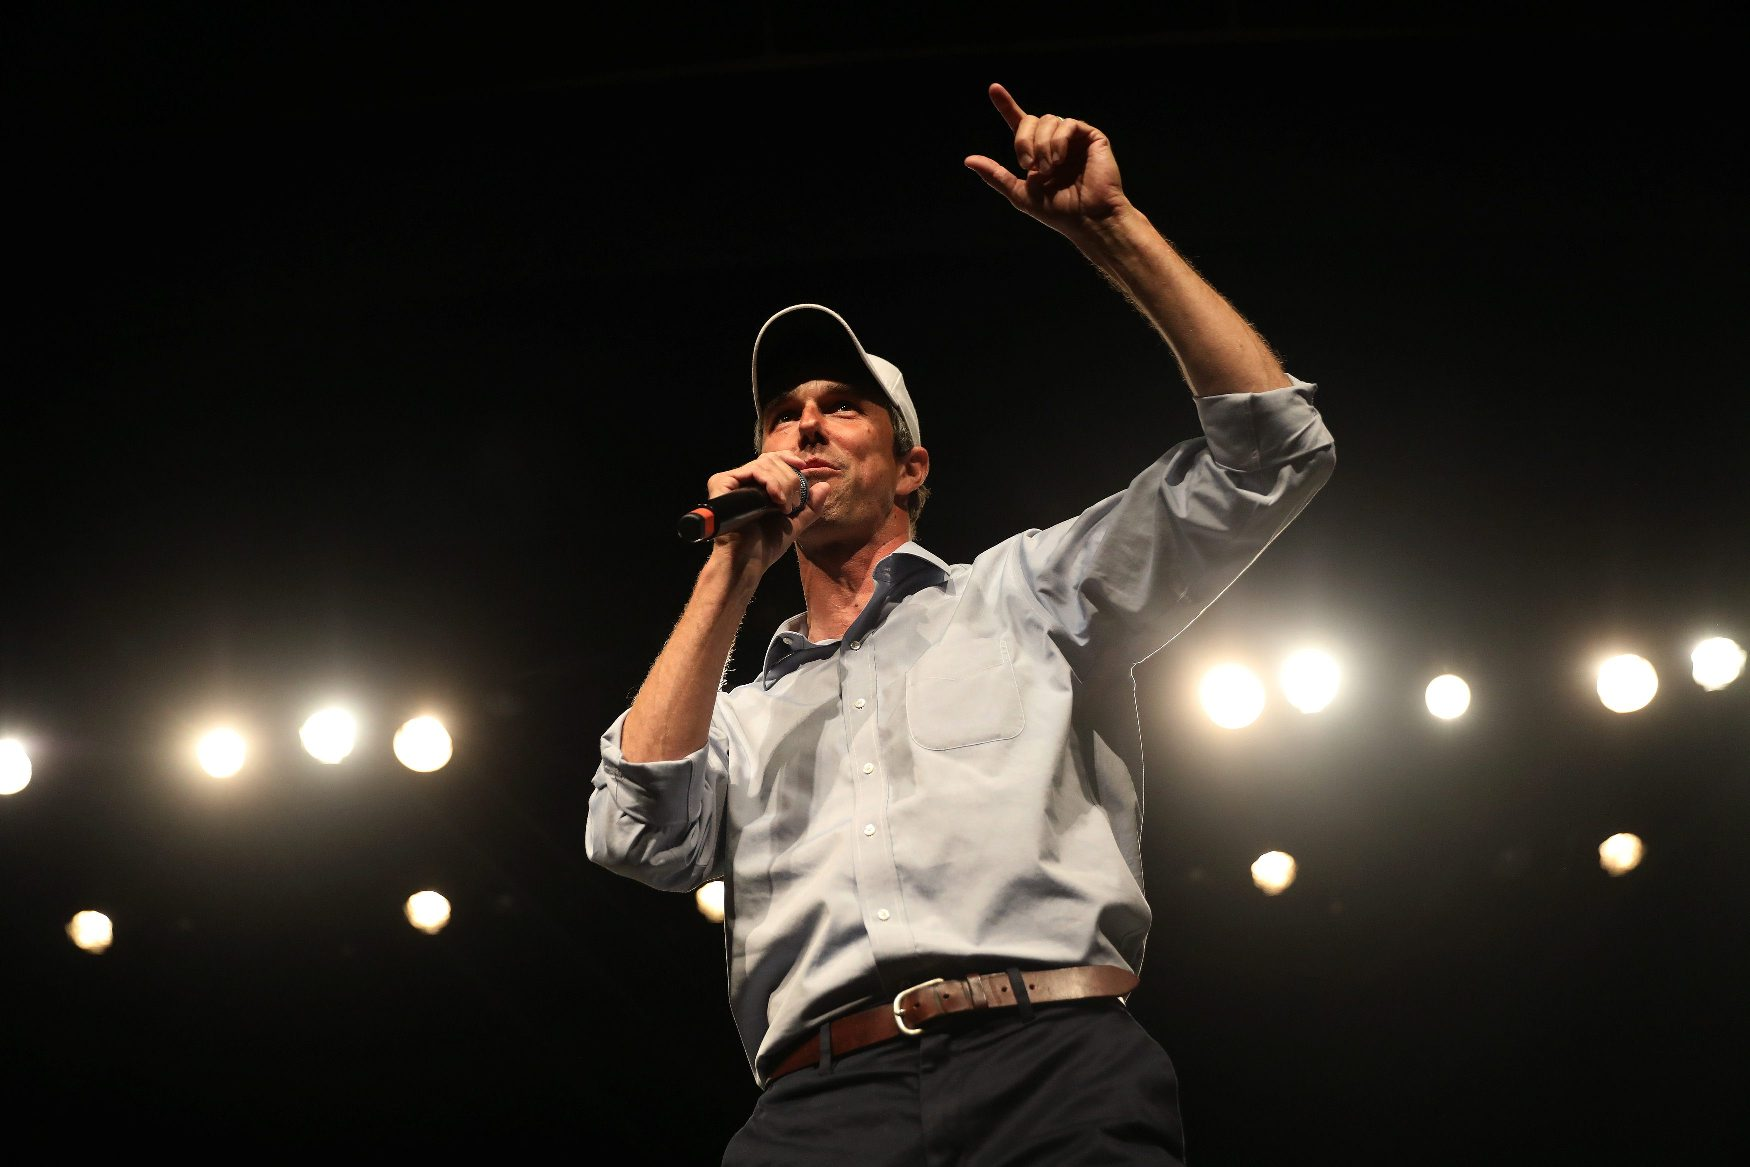 U.S. Rep. Beto O'Rourke (D-TX), candidate for U.S. Senate speaks to supporters at a campaign rally on the last day before the U.S. 2018 midterm elections at the University of Texas El Paso in El Paso, Texas, U.S., November 5, 2018. REUTERS/Mike Segar